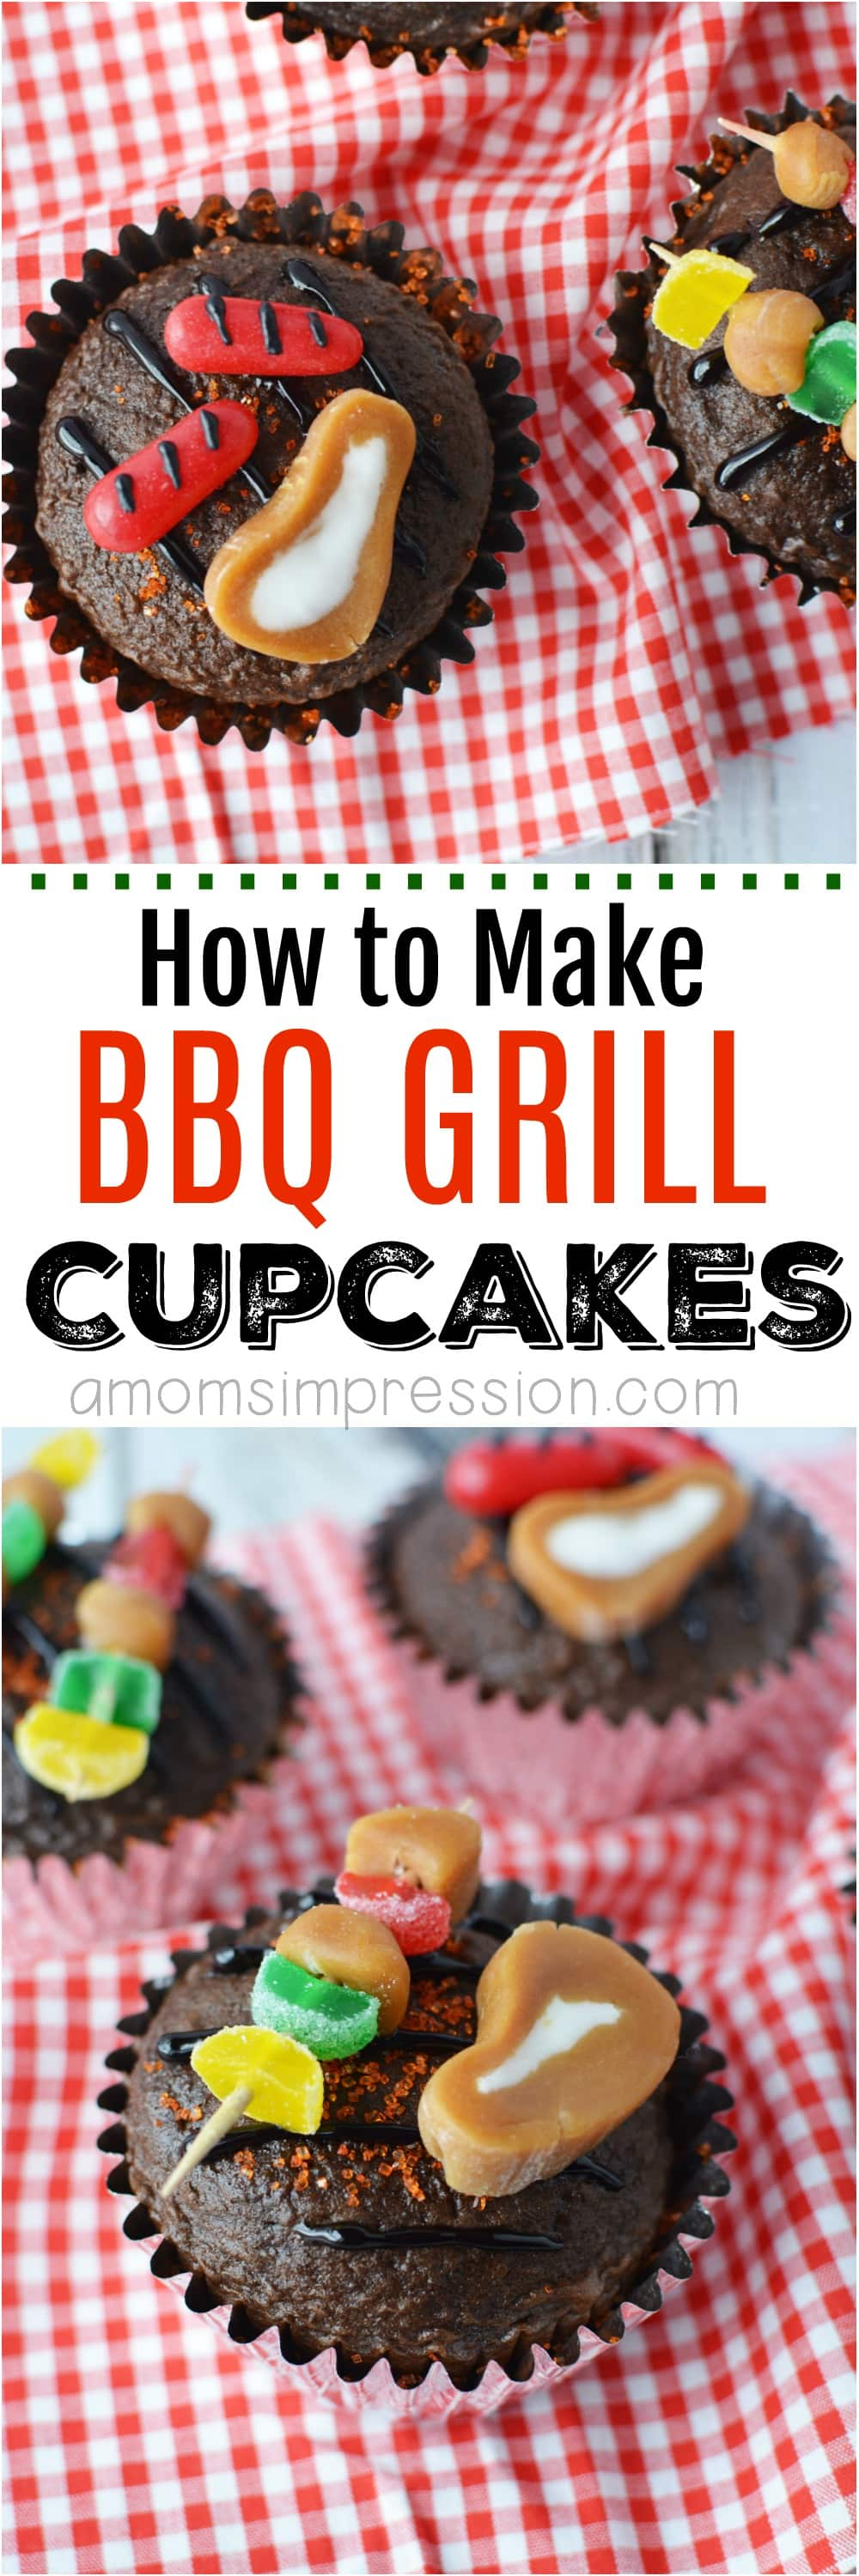 These adorable BBQ Grill Cupcakes will be the hit of any Father's Day party or outdoor summer BBQ. Made with brownies or chocolate cupcakes, these bbq cupcakes are easier to make than you might think. Get the easy step-by-step directions.